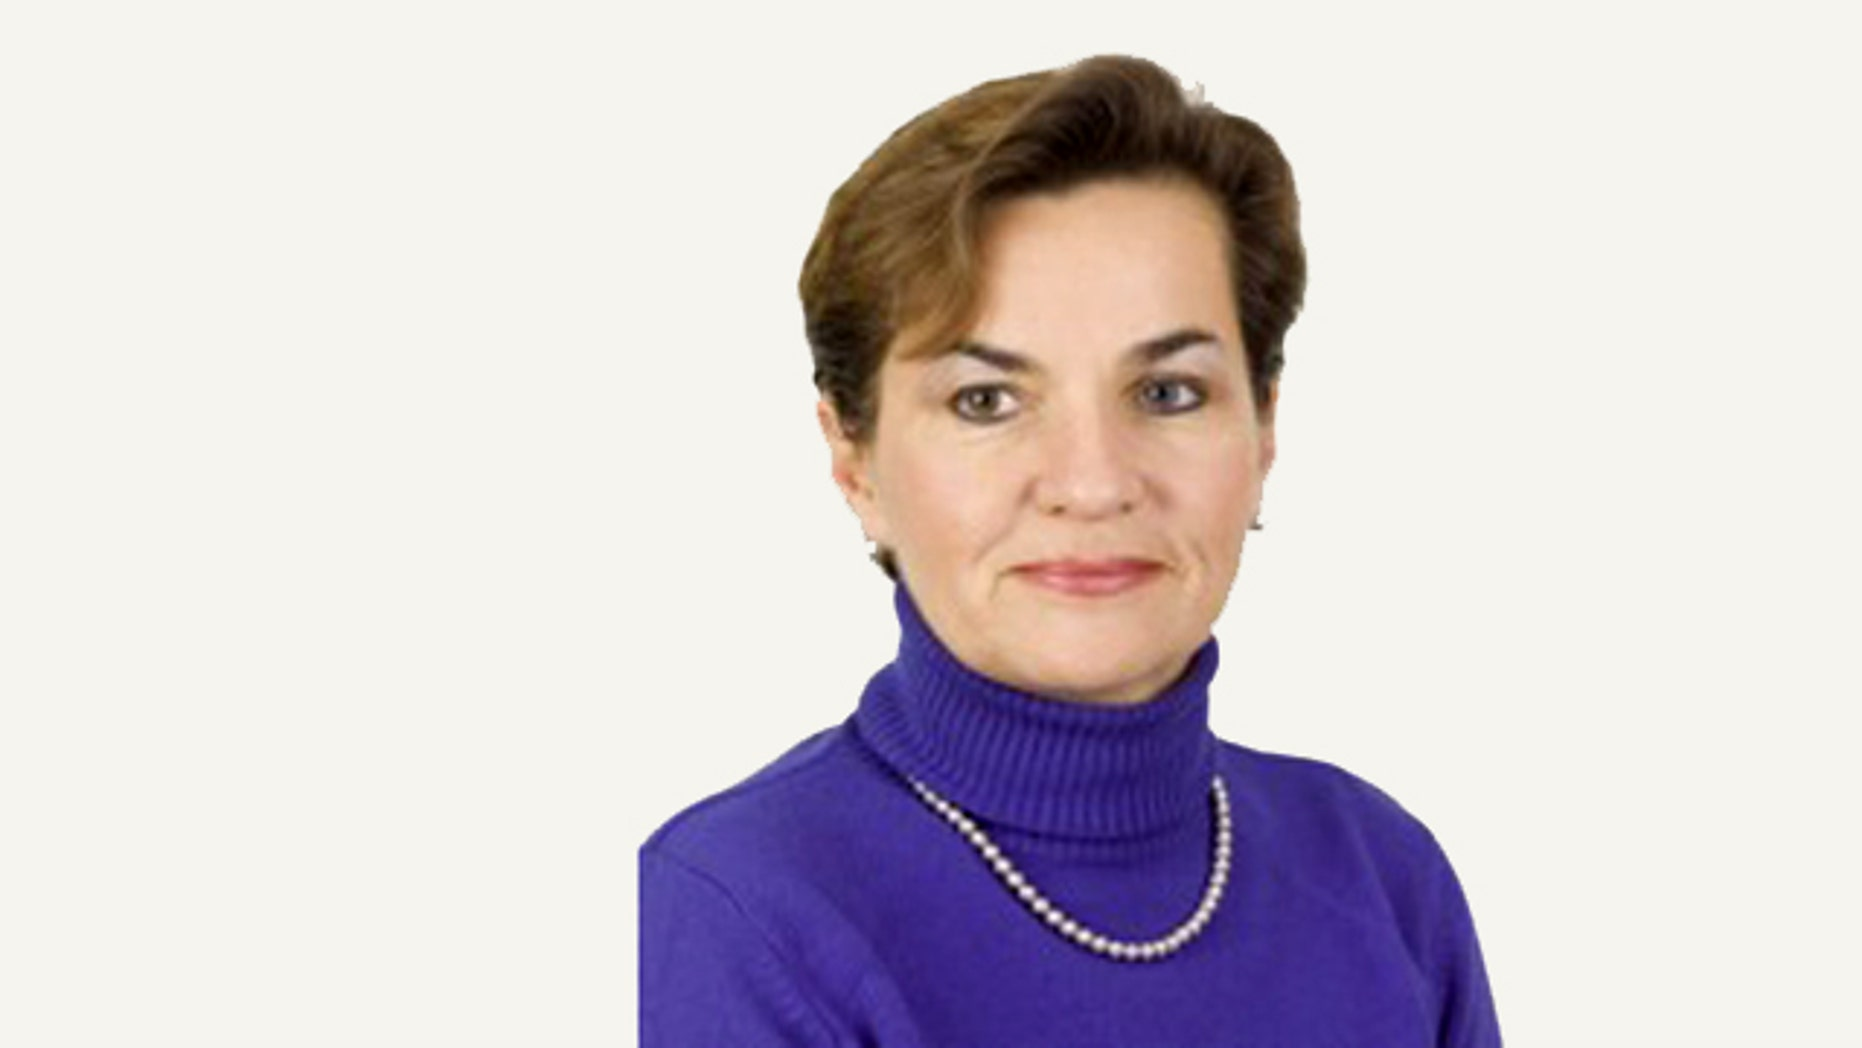 Christiana Figueres, a member of Costa Rica's climate team since 1995, will replace Yvo de Boer as executive secretary of the U.N.'s controversial climate group.